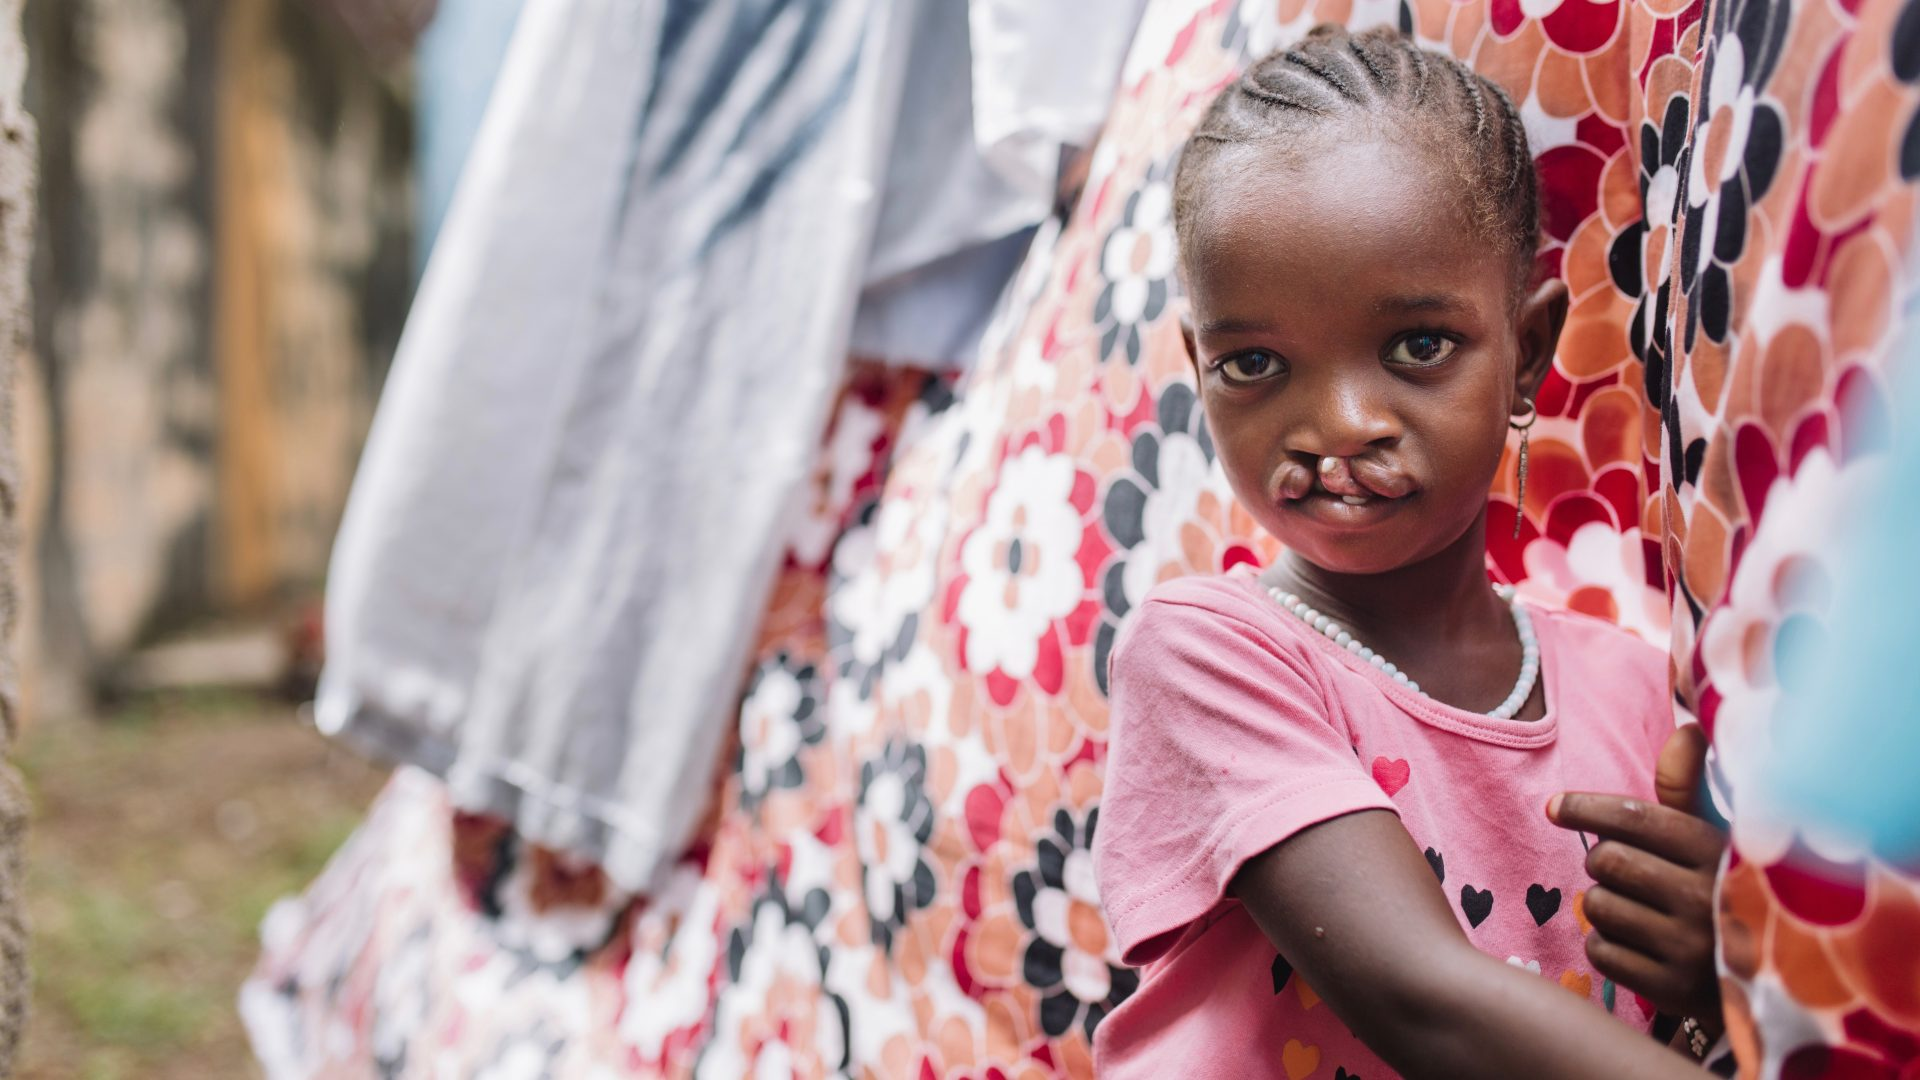 Aminata, cleft lip patient, at home before surgery.